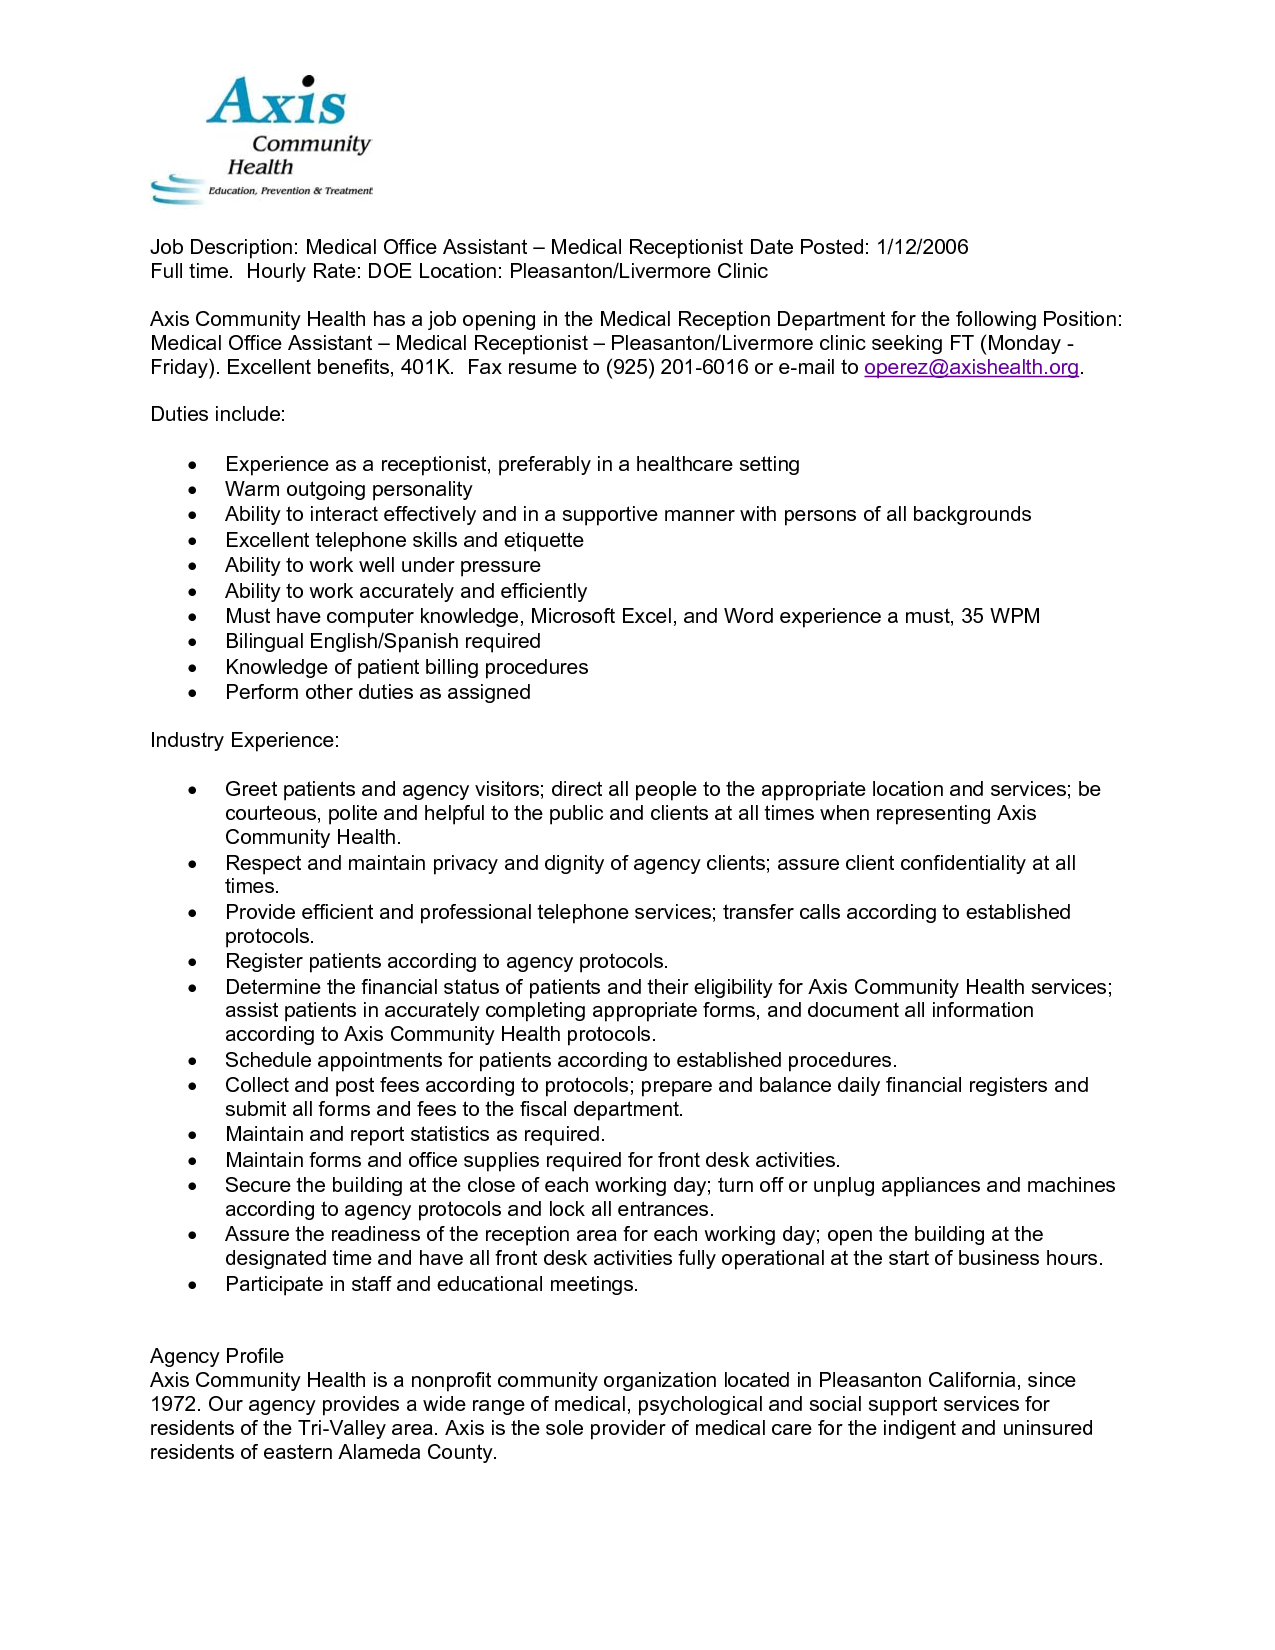 resume examples job summary - chipotle launches essay contest for cups and  20k college